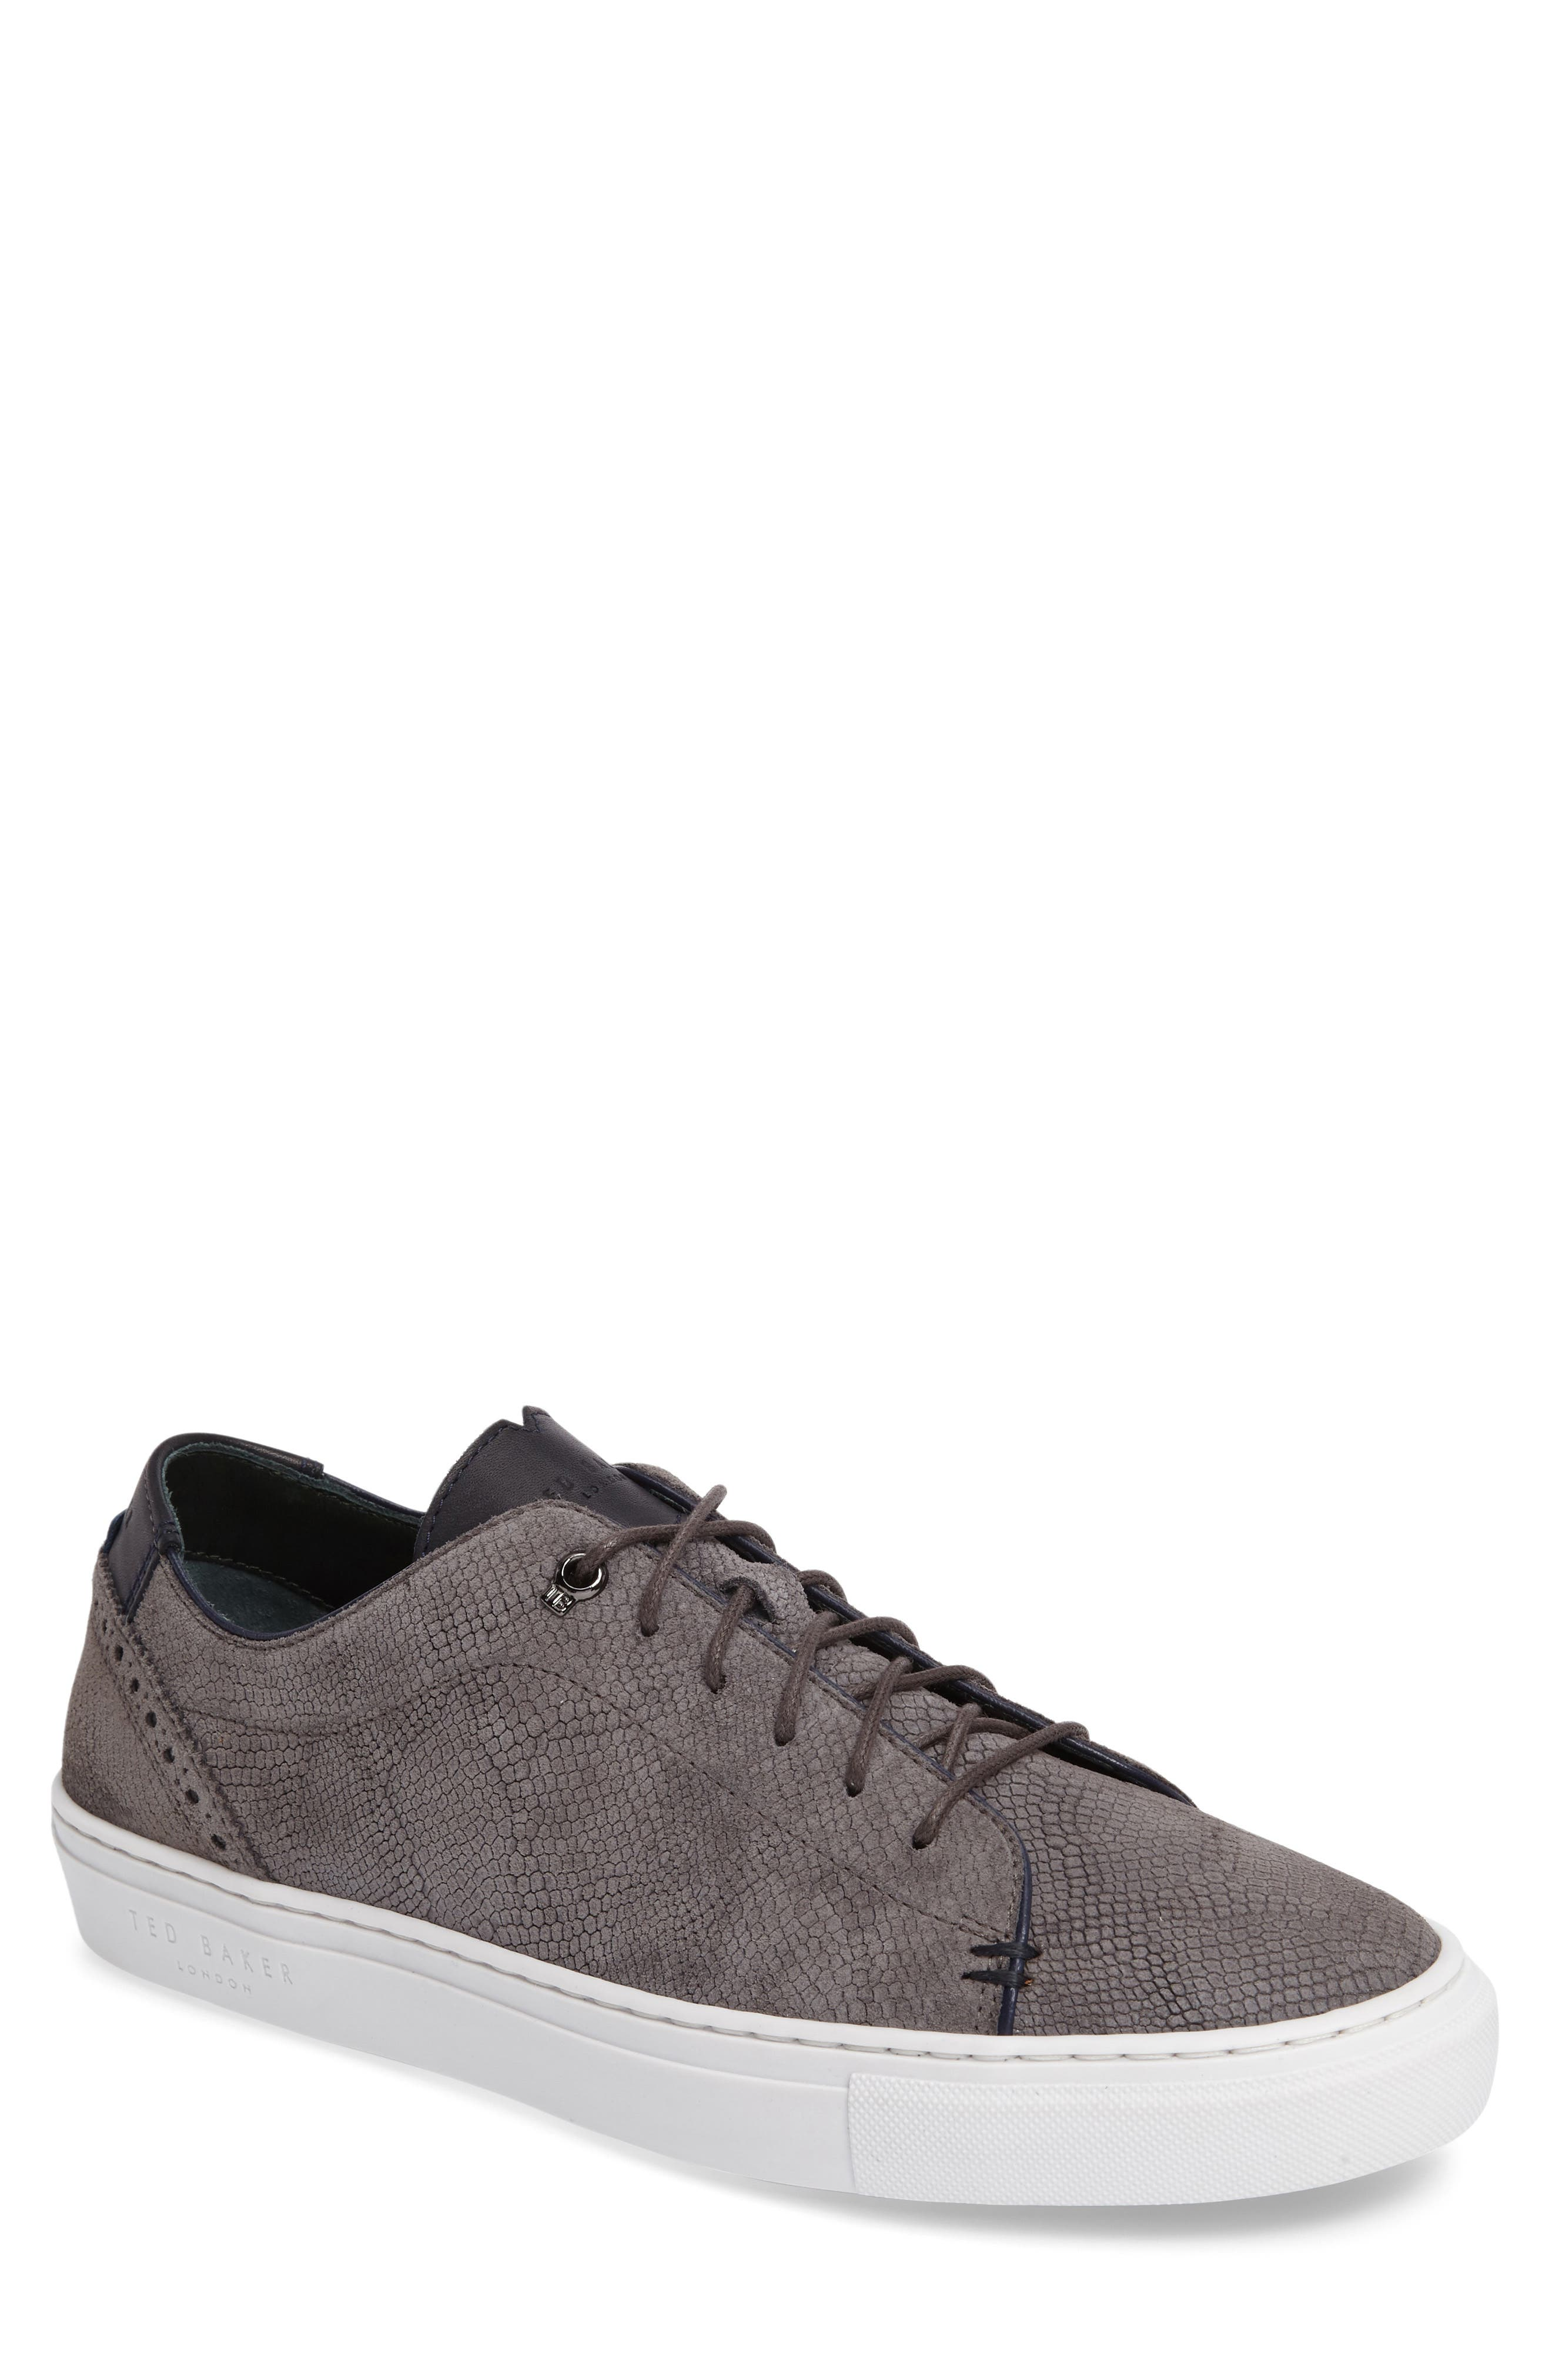 Duke Snake Embossed Sneaker,                             Main thumbnail 1, color,